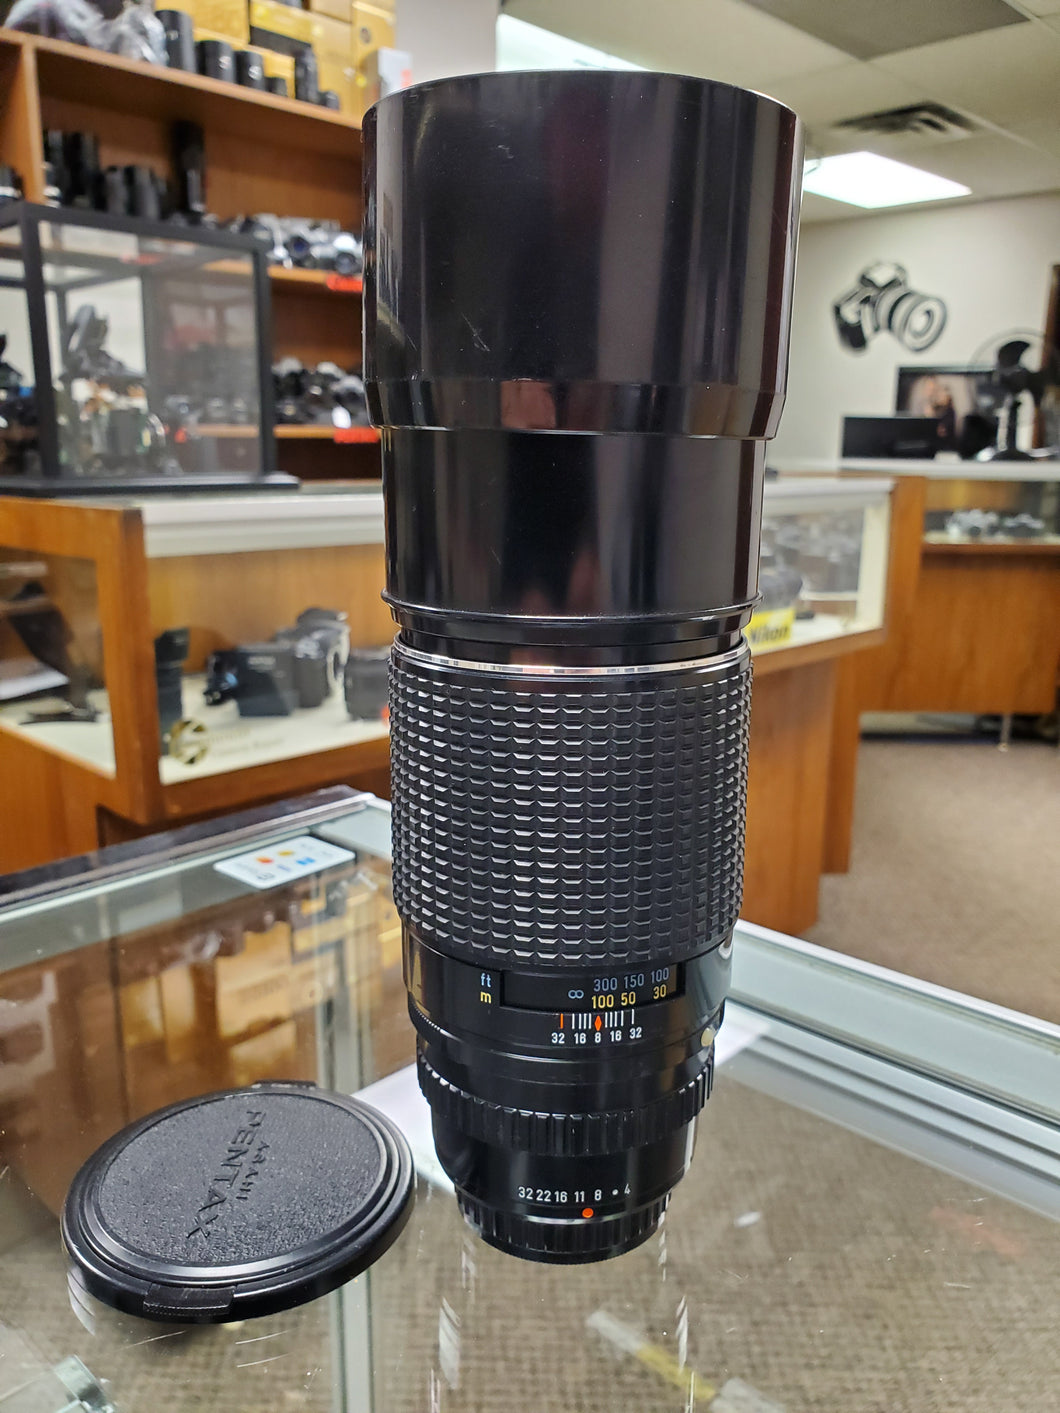 Pentax SMC 300mm F4 Lens and Hood For Pentax K Mount, Rare - Paramount Camera & Repair - Saskatoon Canada Used Cameras Used Lenses Batteries Grips Chargers Studio